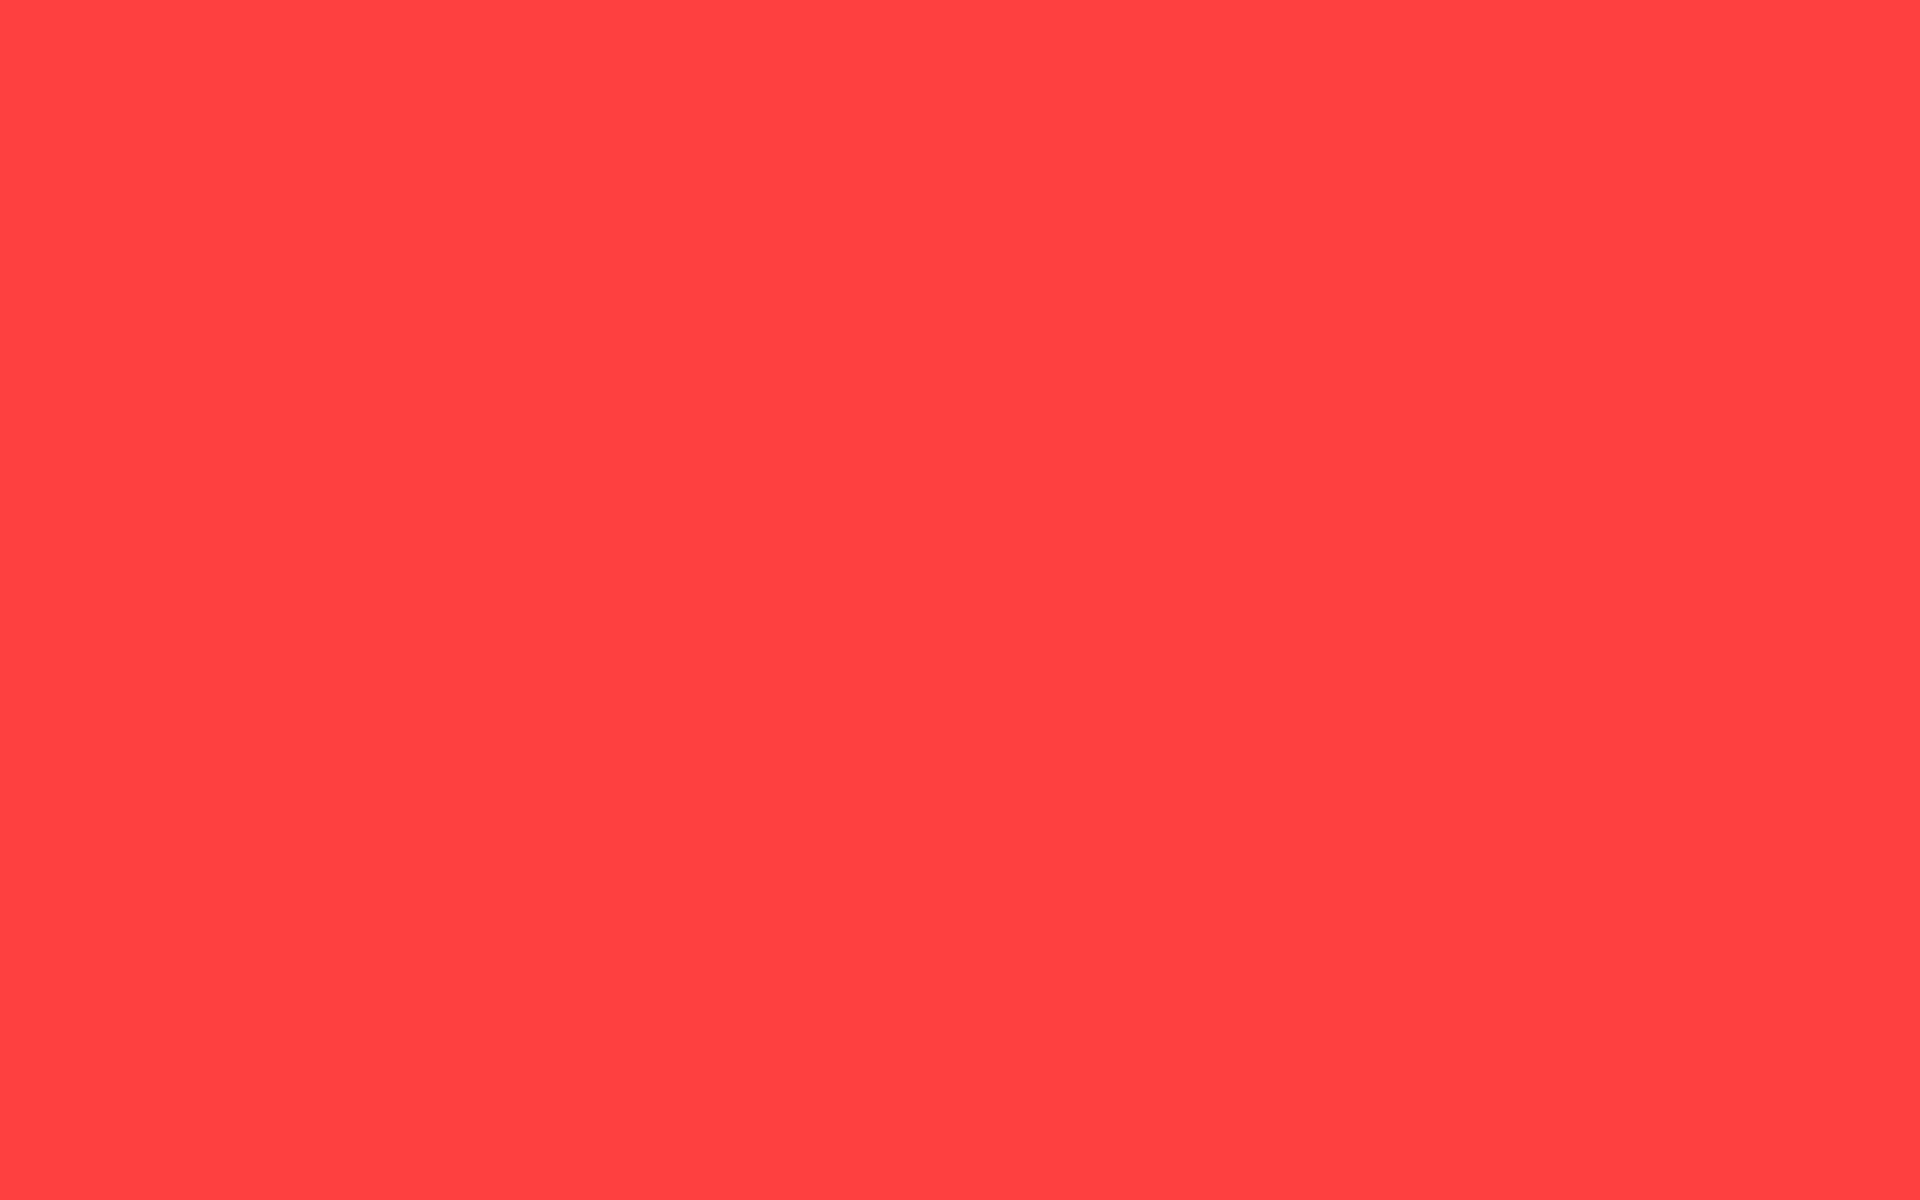 1920x1200 Coral Red Solid Color Background